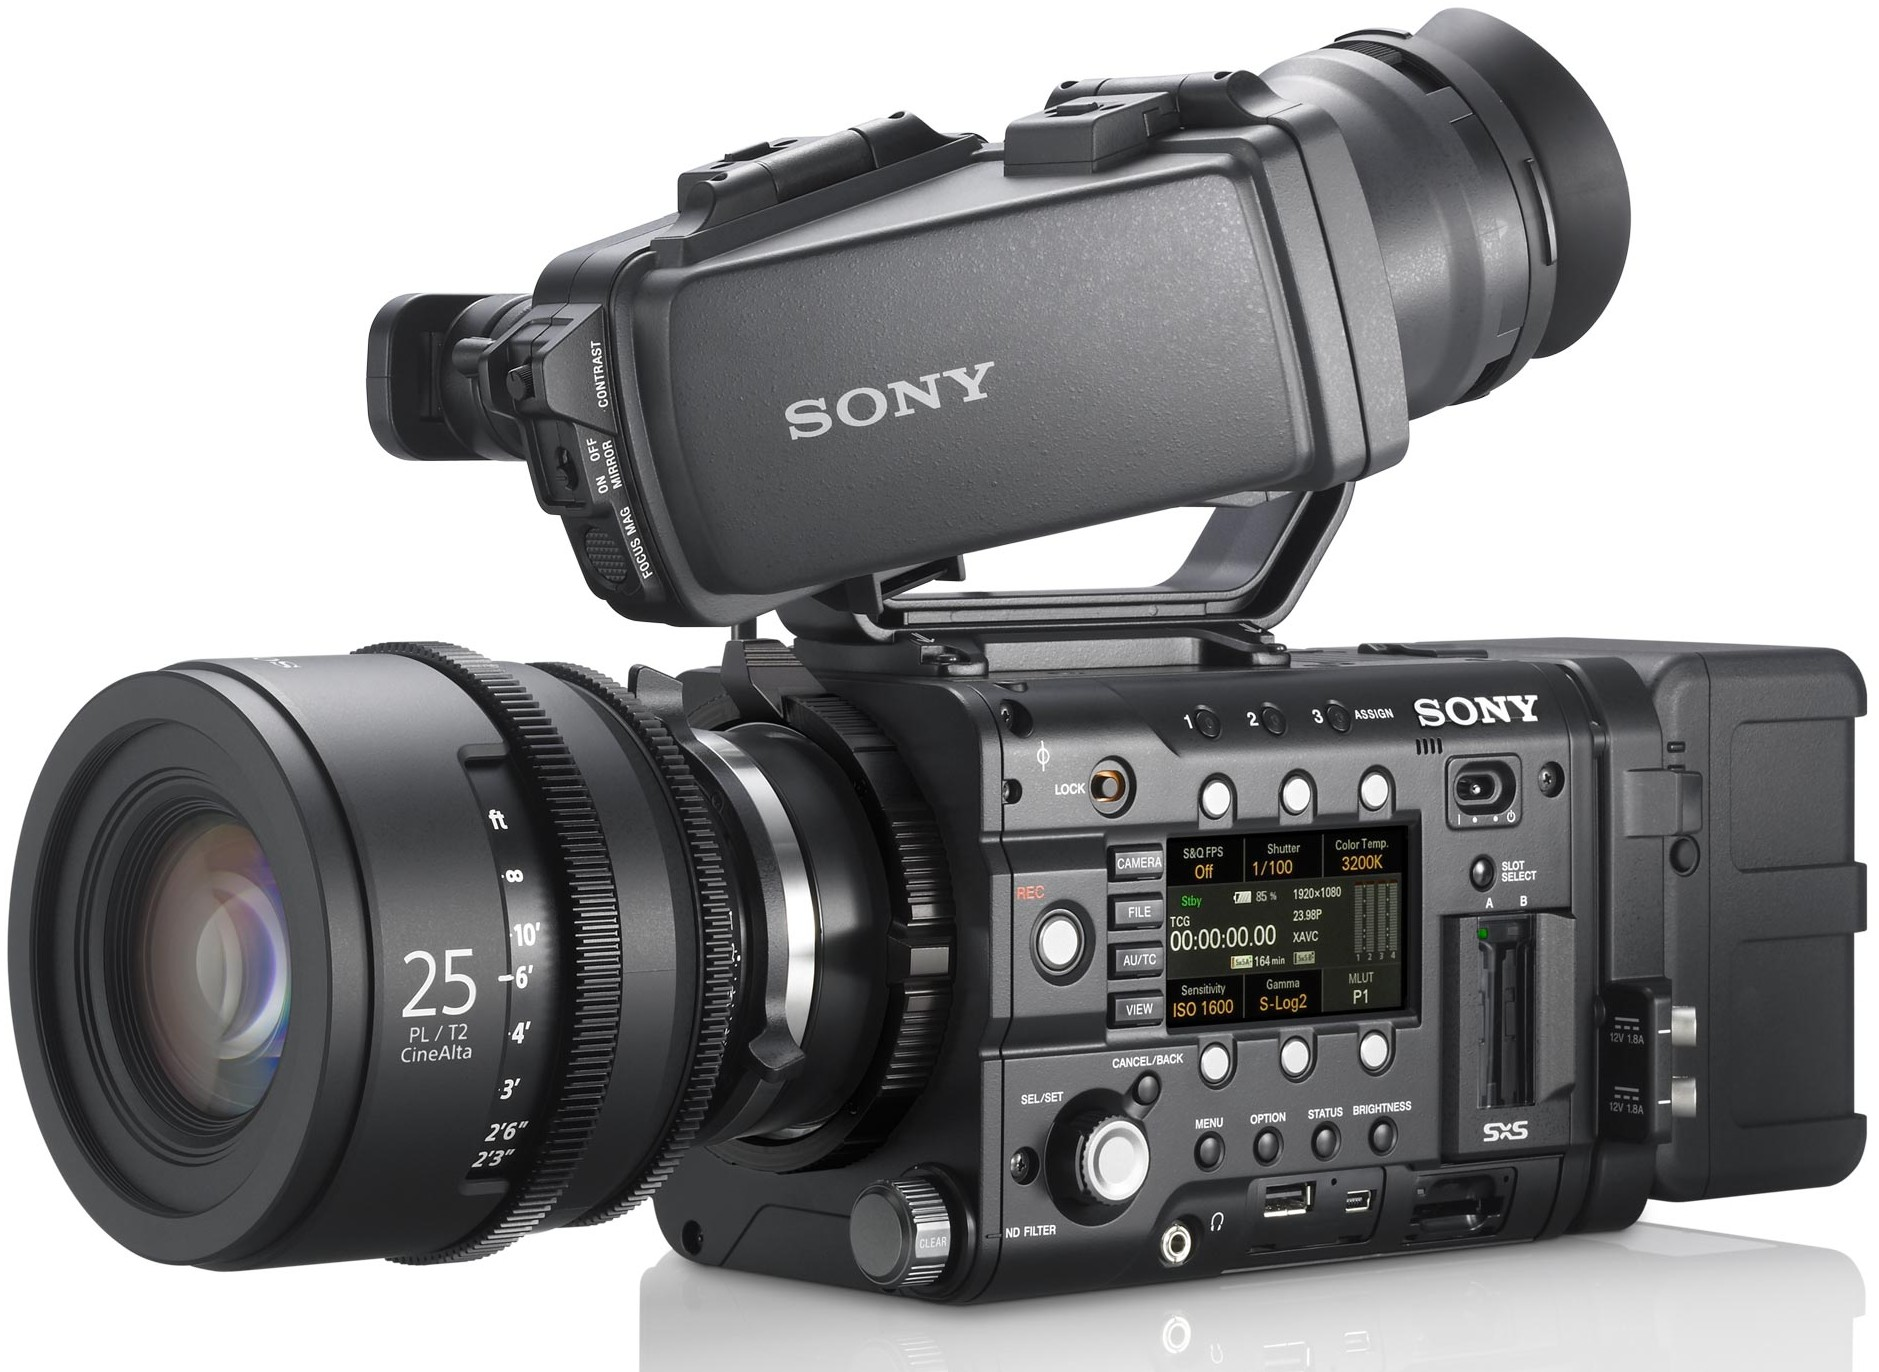 sony xdcam content browser serial number